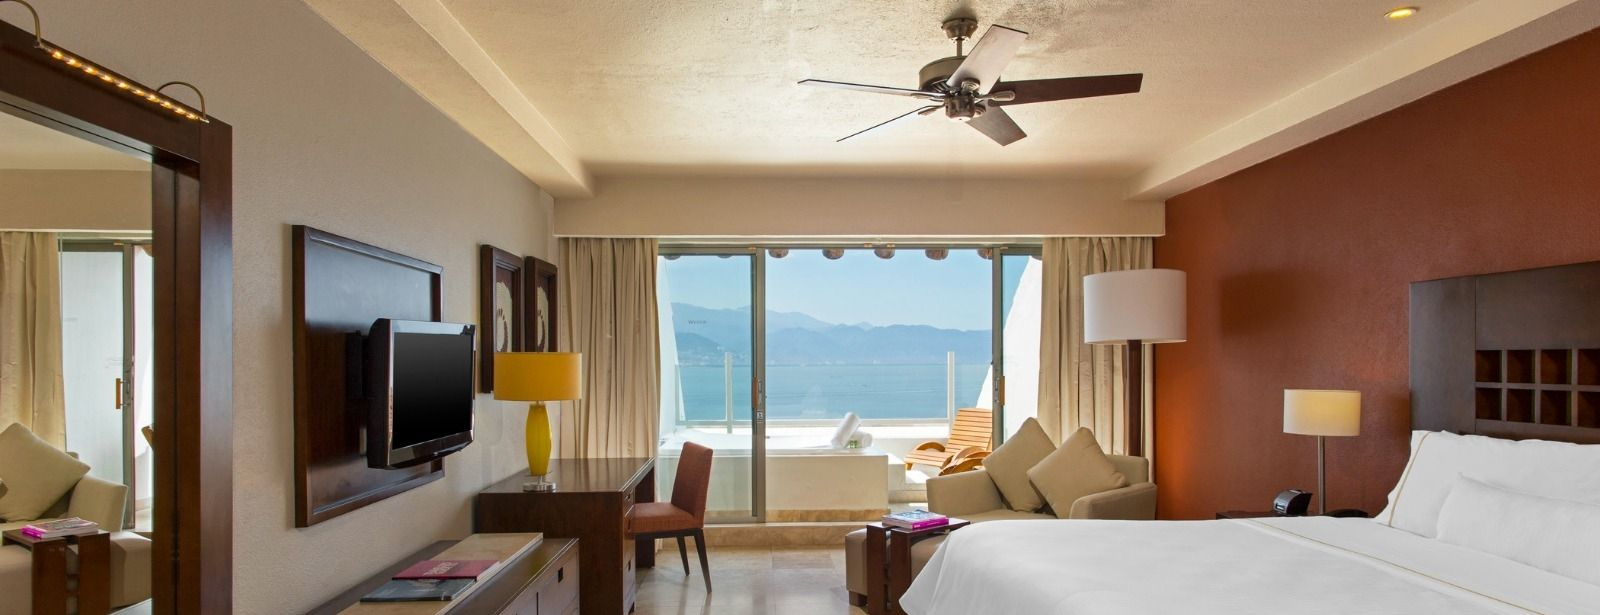 Grand Deluxe Room - The Westin Resort & Spa, Puerto Vallarta